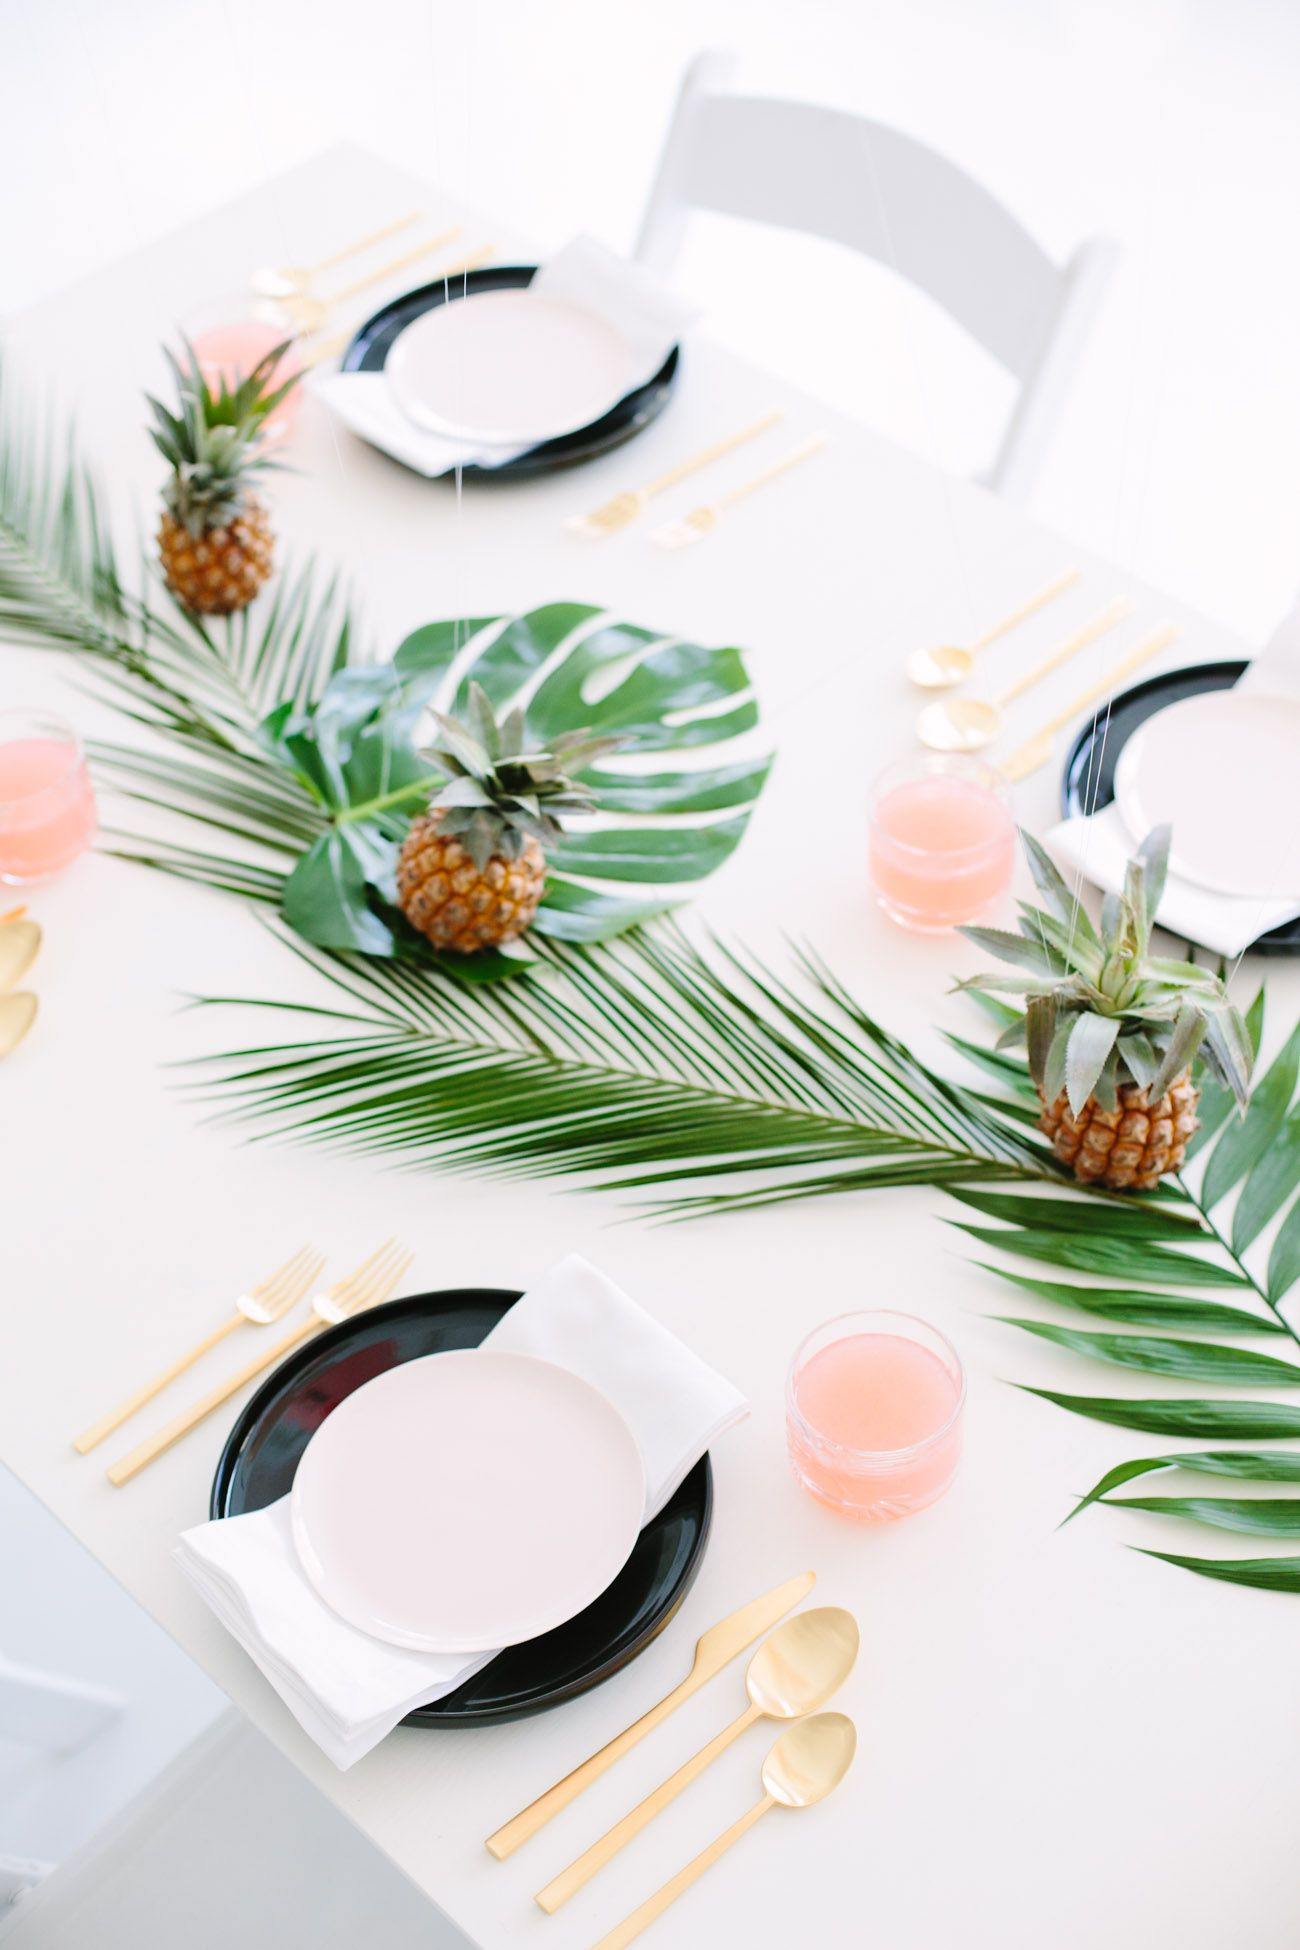 Genial A Tropical Dinner Party Is The Perfect Way To Have A Modern, Upscale Luau.  Learn How To Add Decoupage Balloons, Pineapples And Bon Bons To Create A  Gorgeous ...